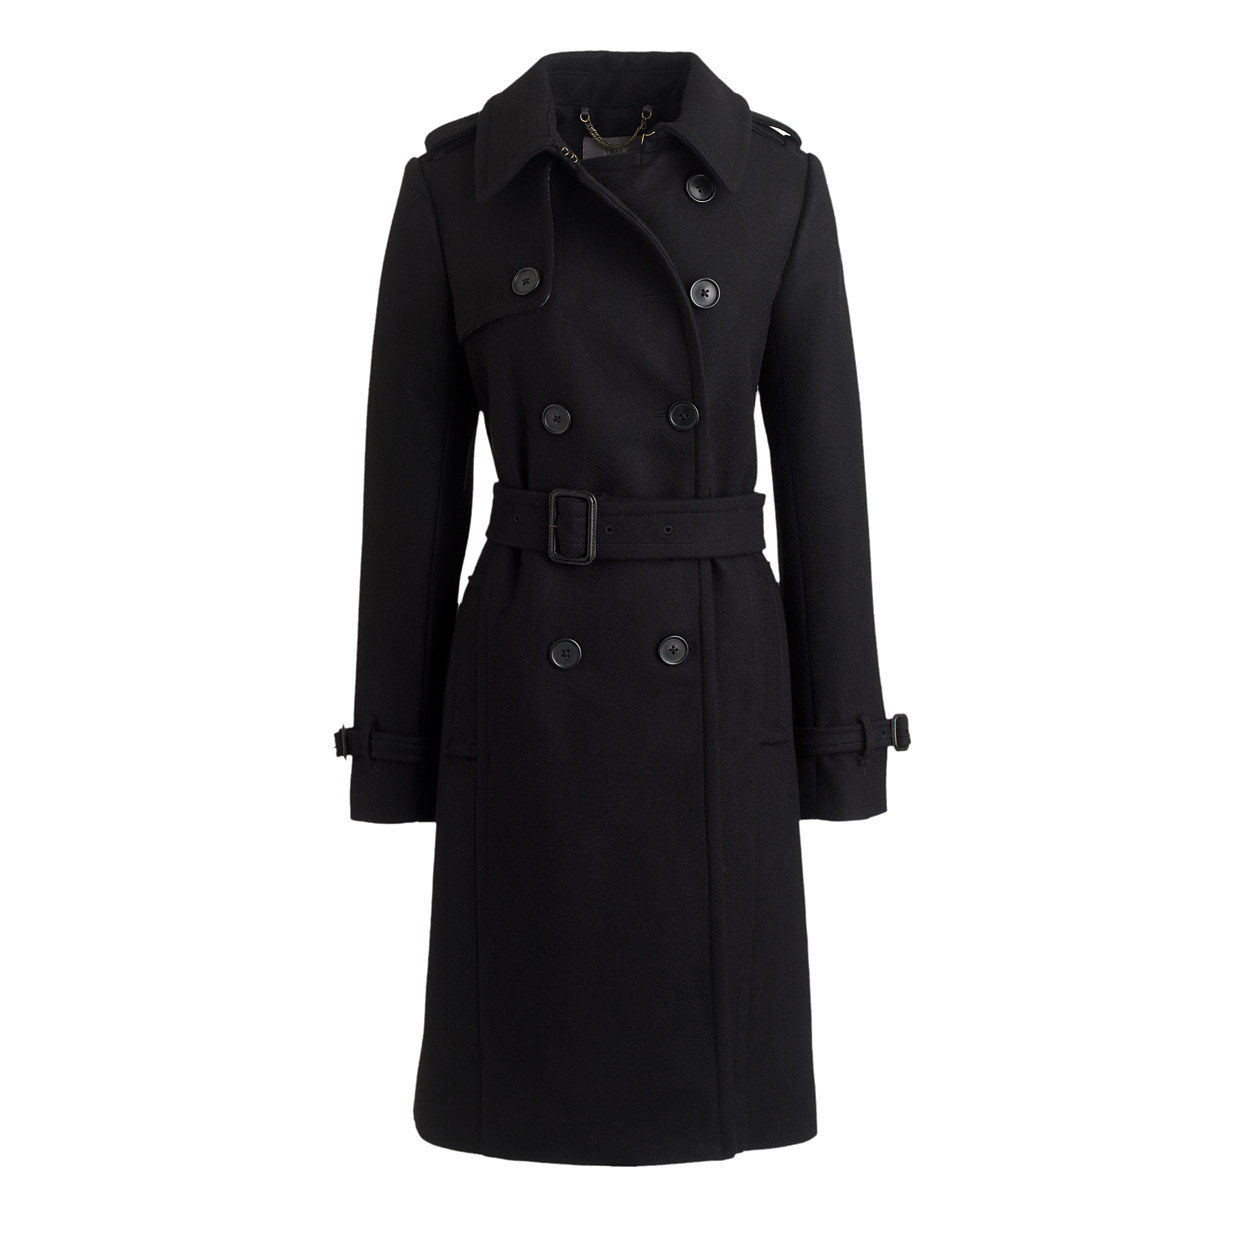 J.Crew Icon Trench in Wool-Cashmere Black